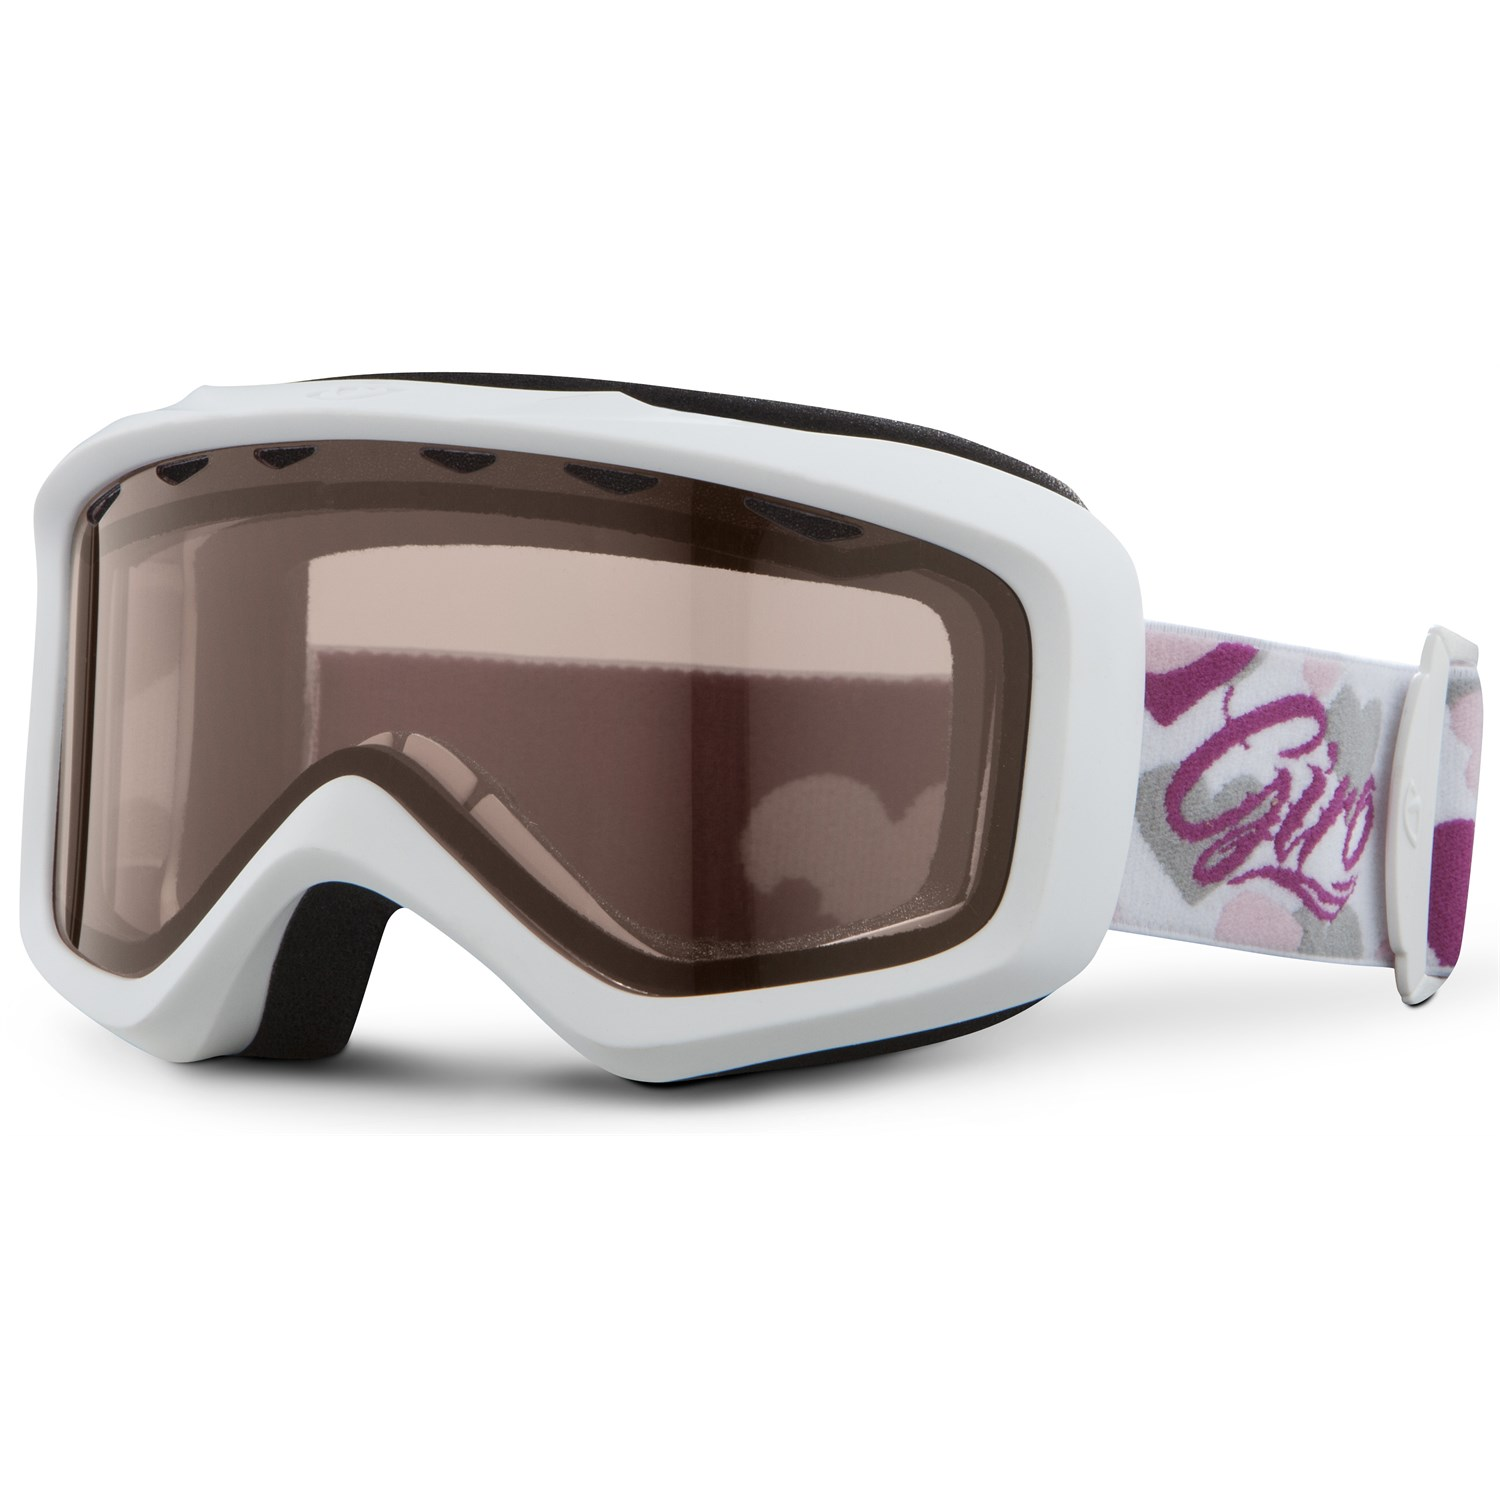 1ff8d141765f Giro Grade Goggles - Youth - Girl s